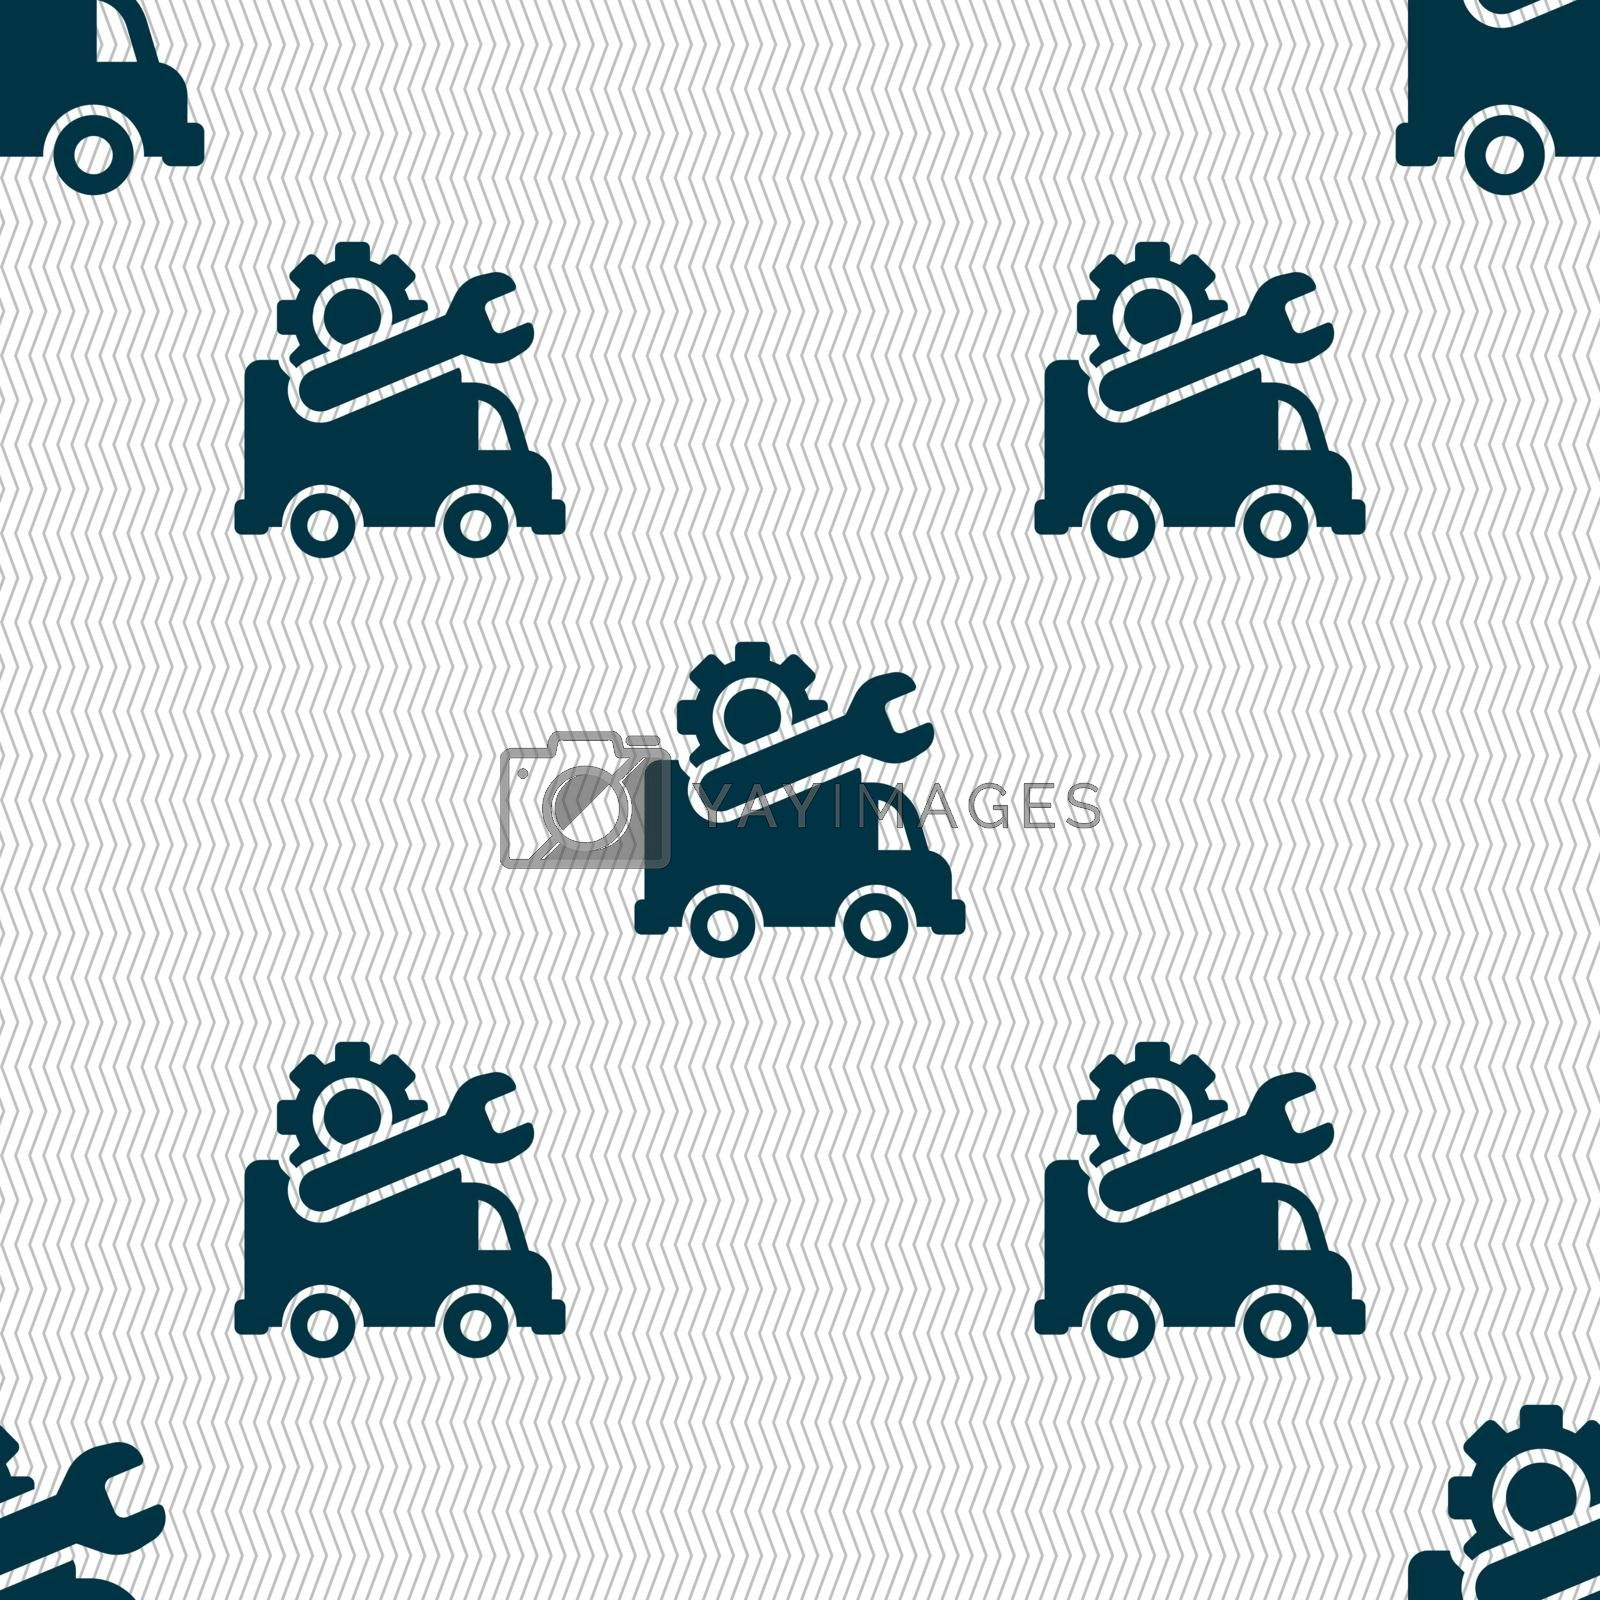 Computer repairs icon sign. Seamless pattern with geometric texture. Vector illustration